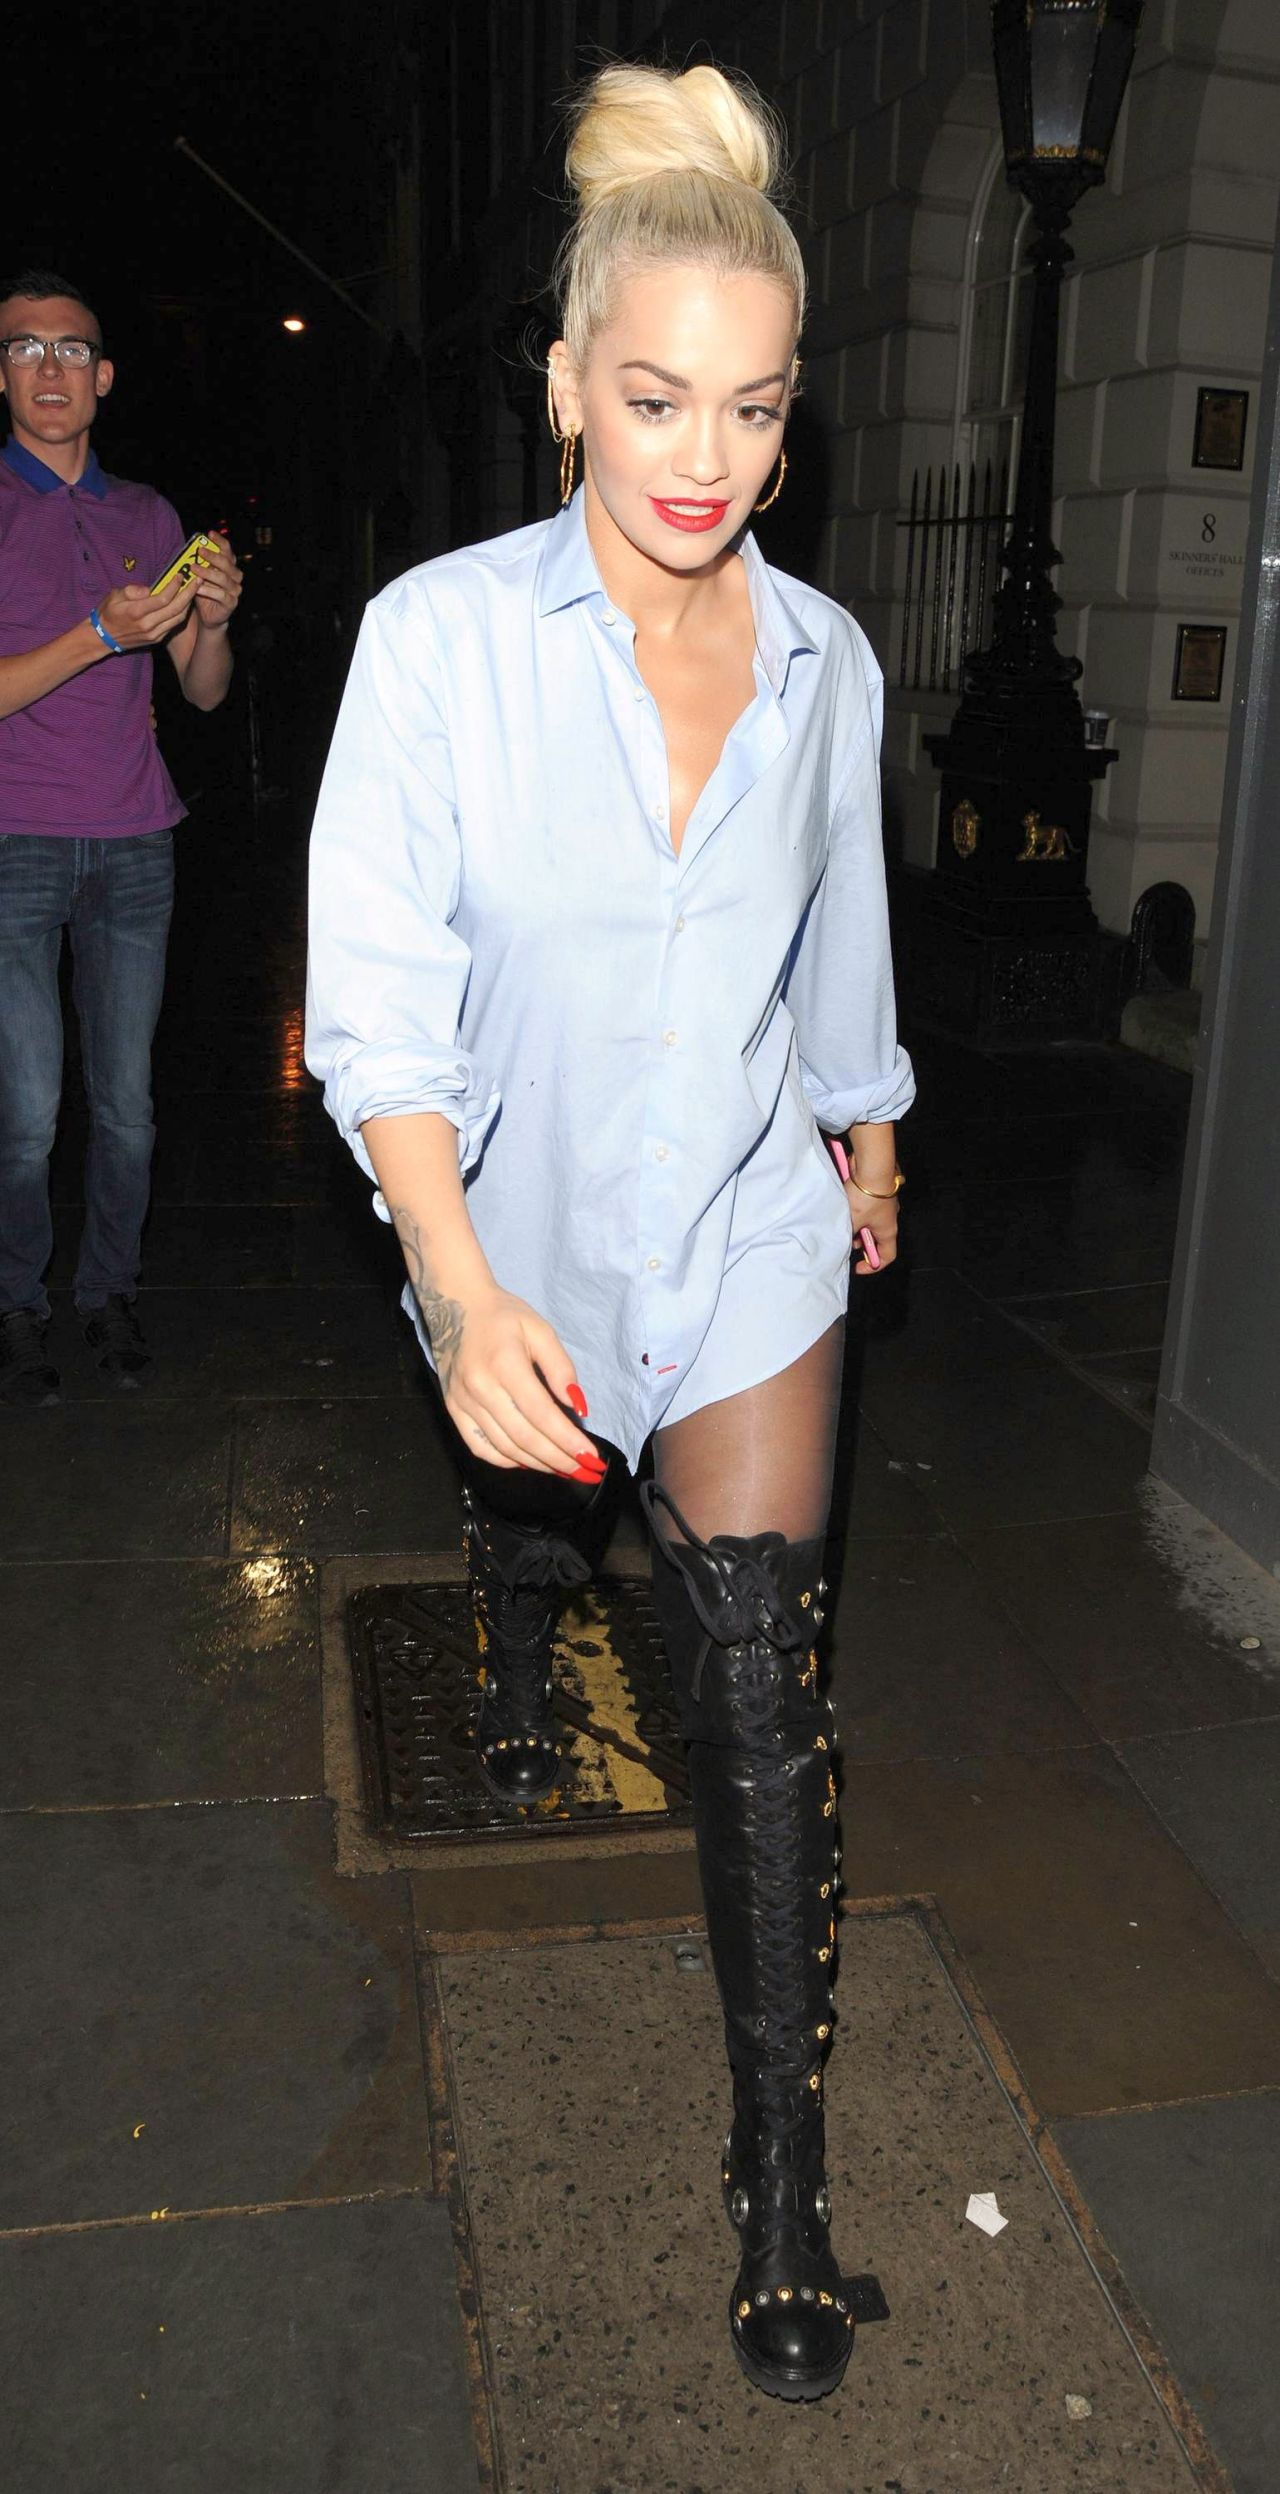 rita-ora-casual-style-out-in-london-july-2015_4